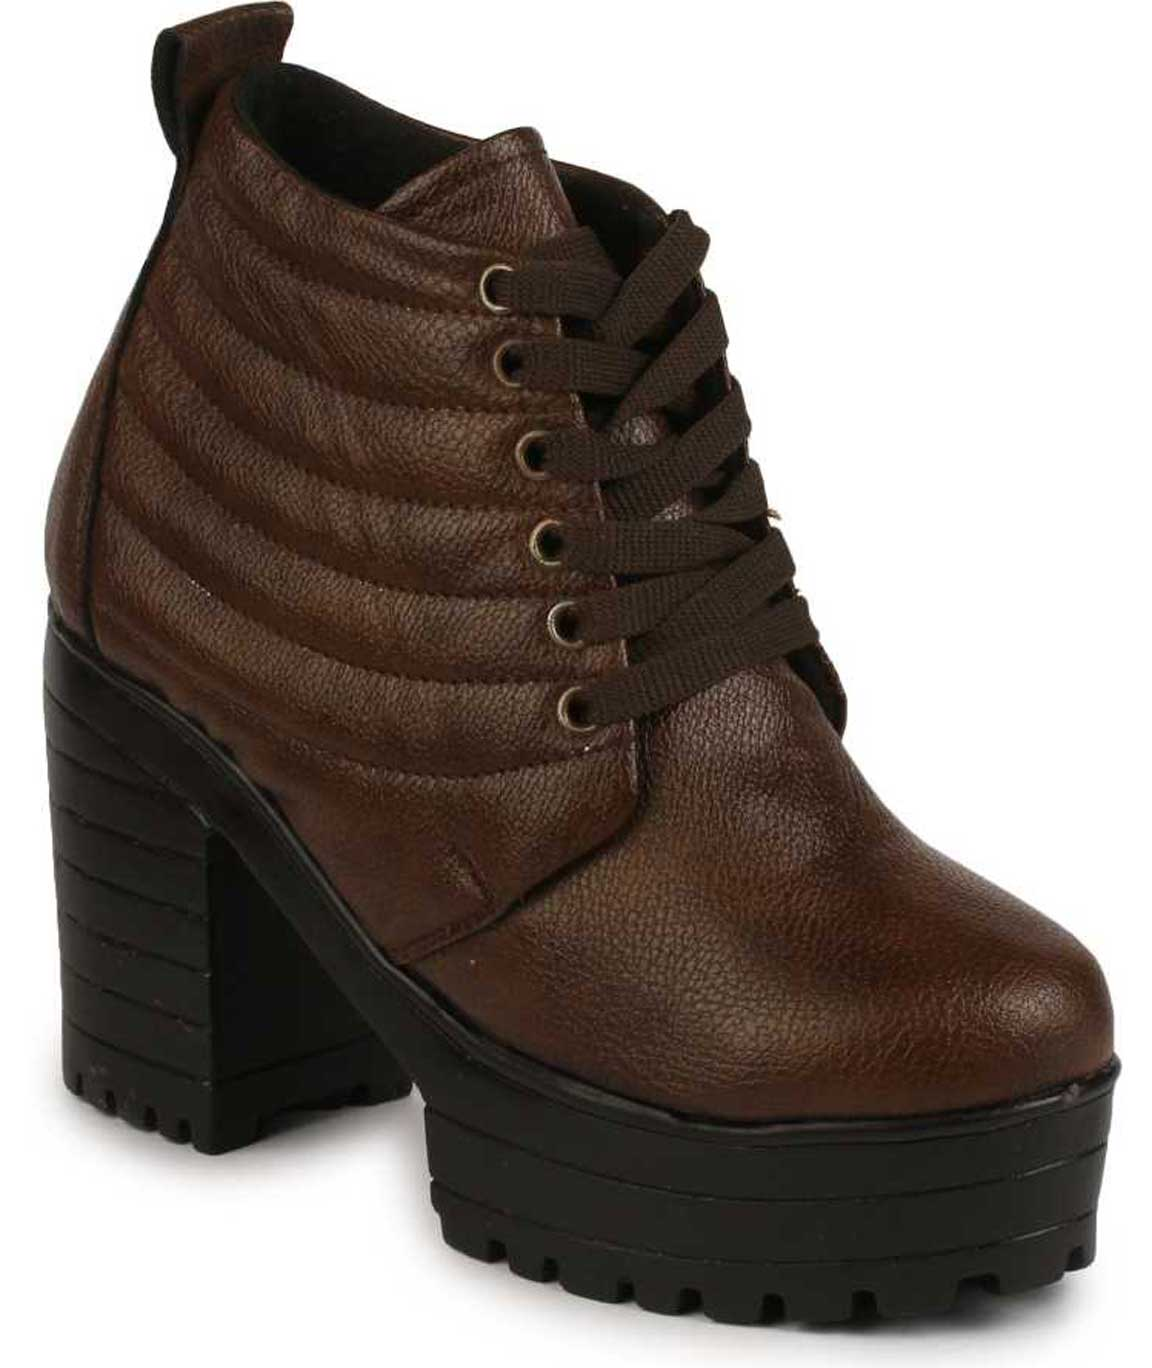 BROWN BOOT FOR WOMEN